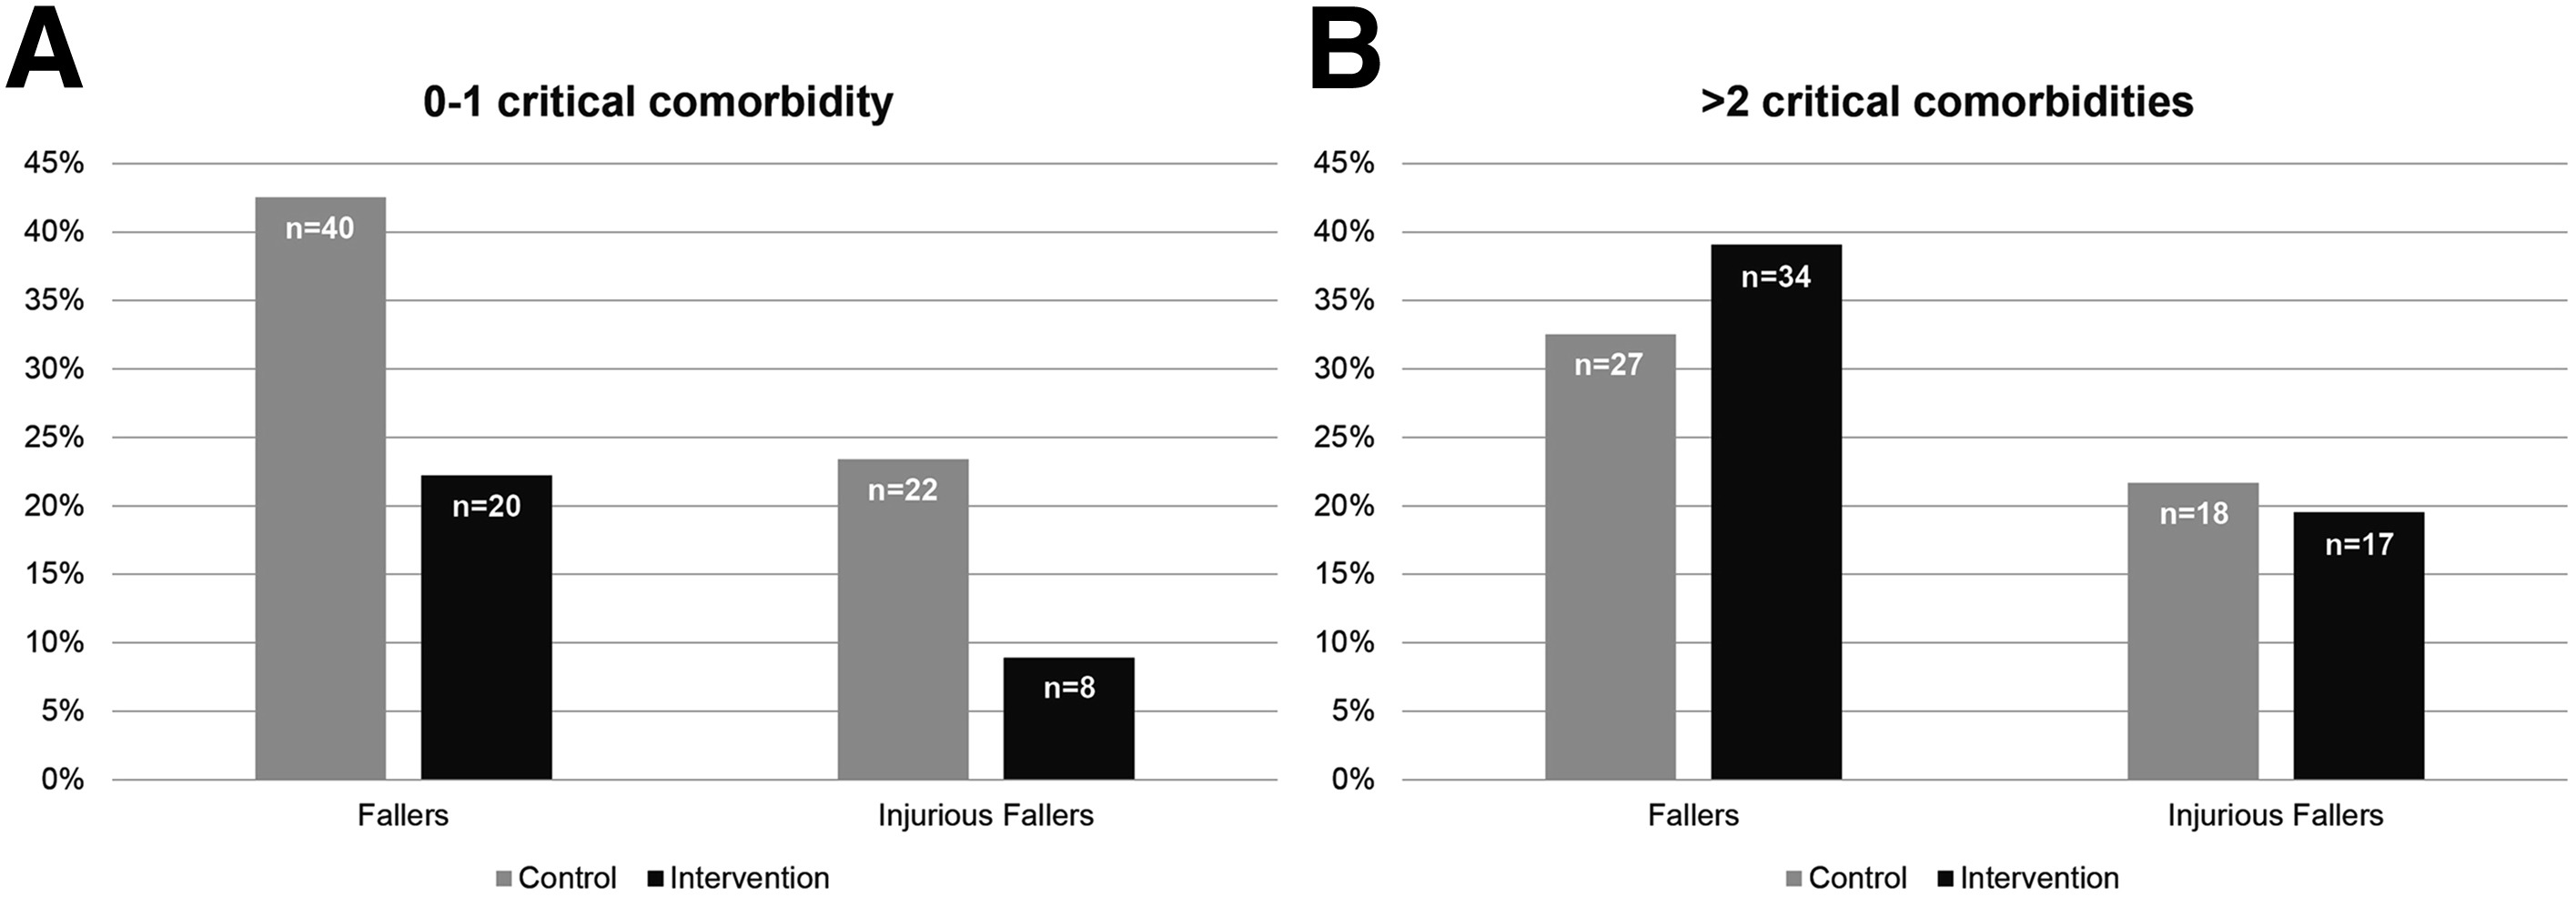 Randomized Controlled Trial of Screening, Risk